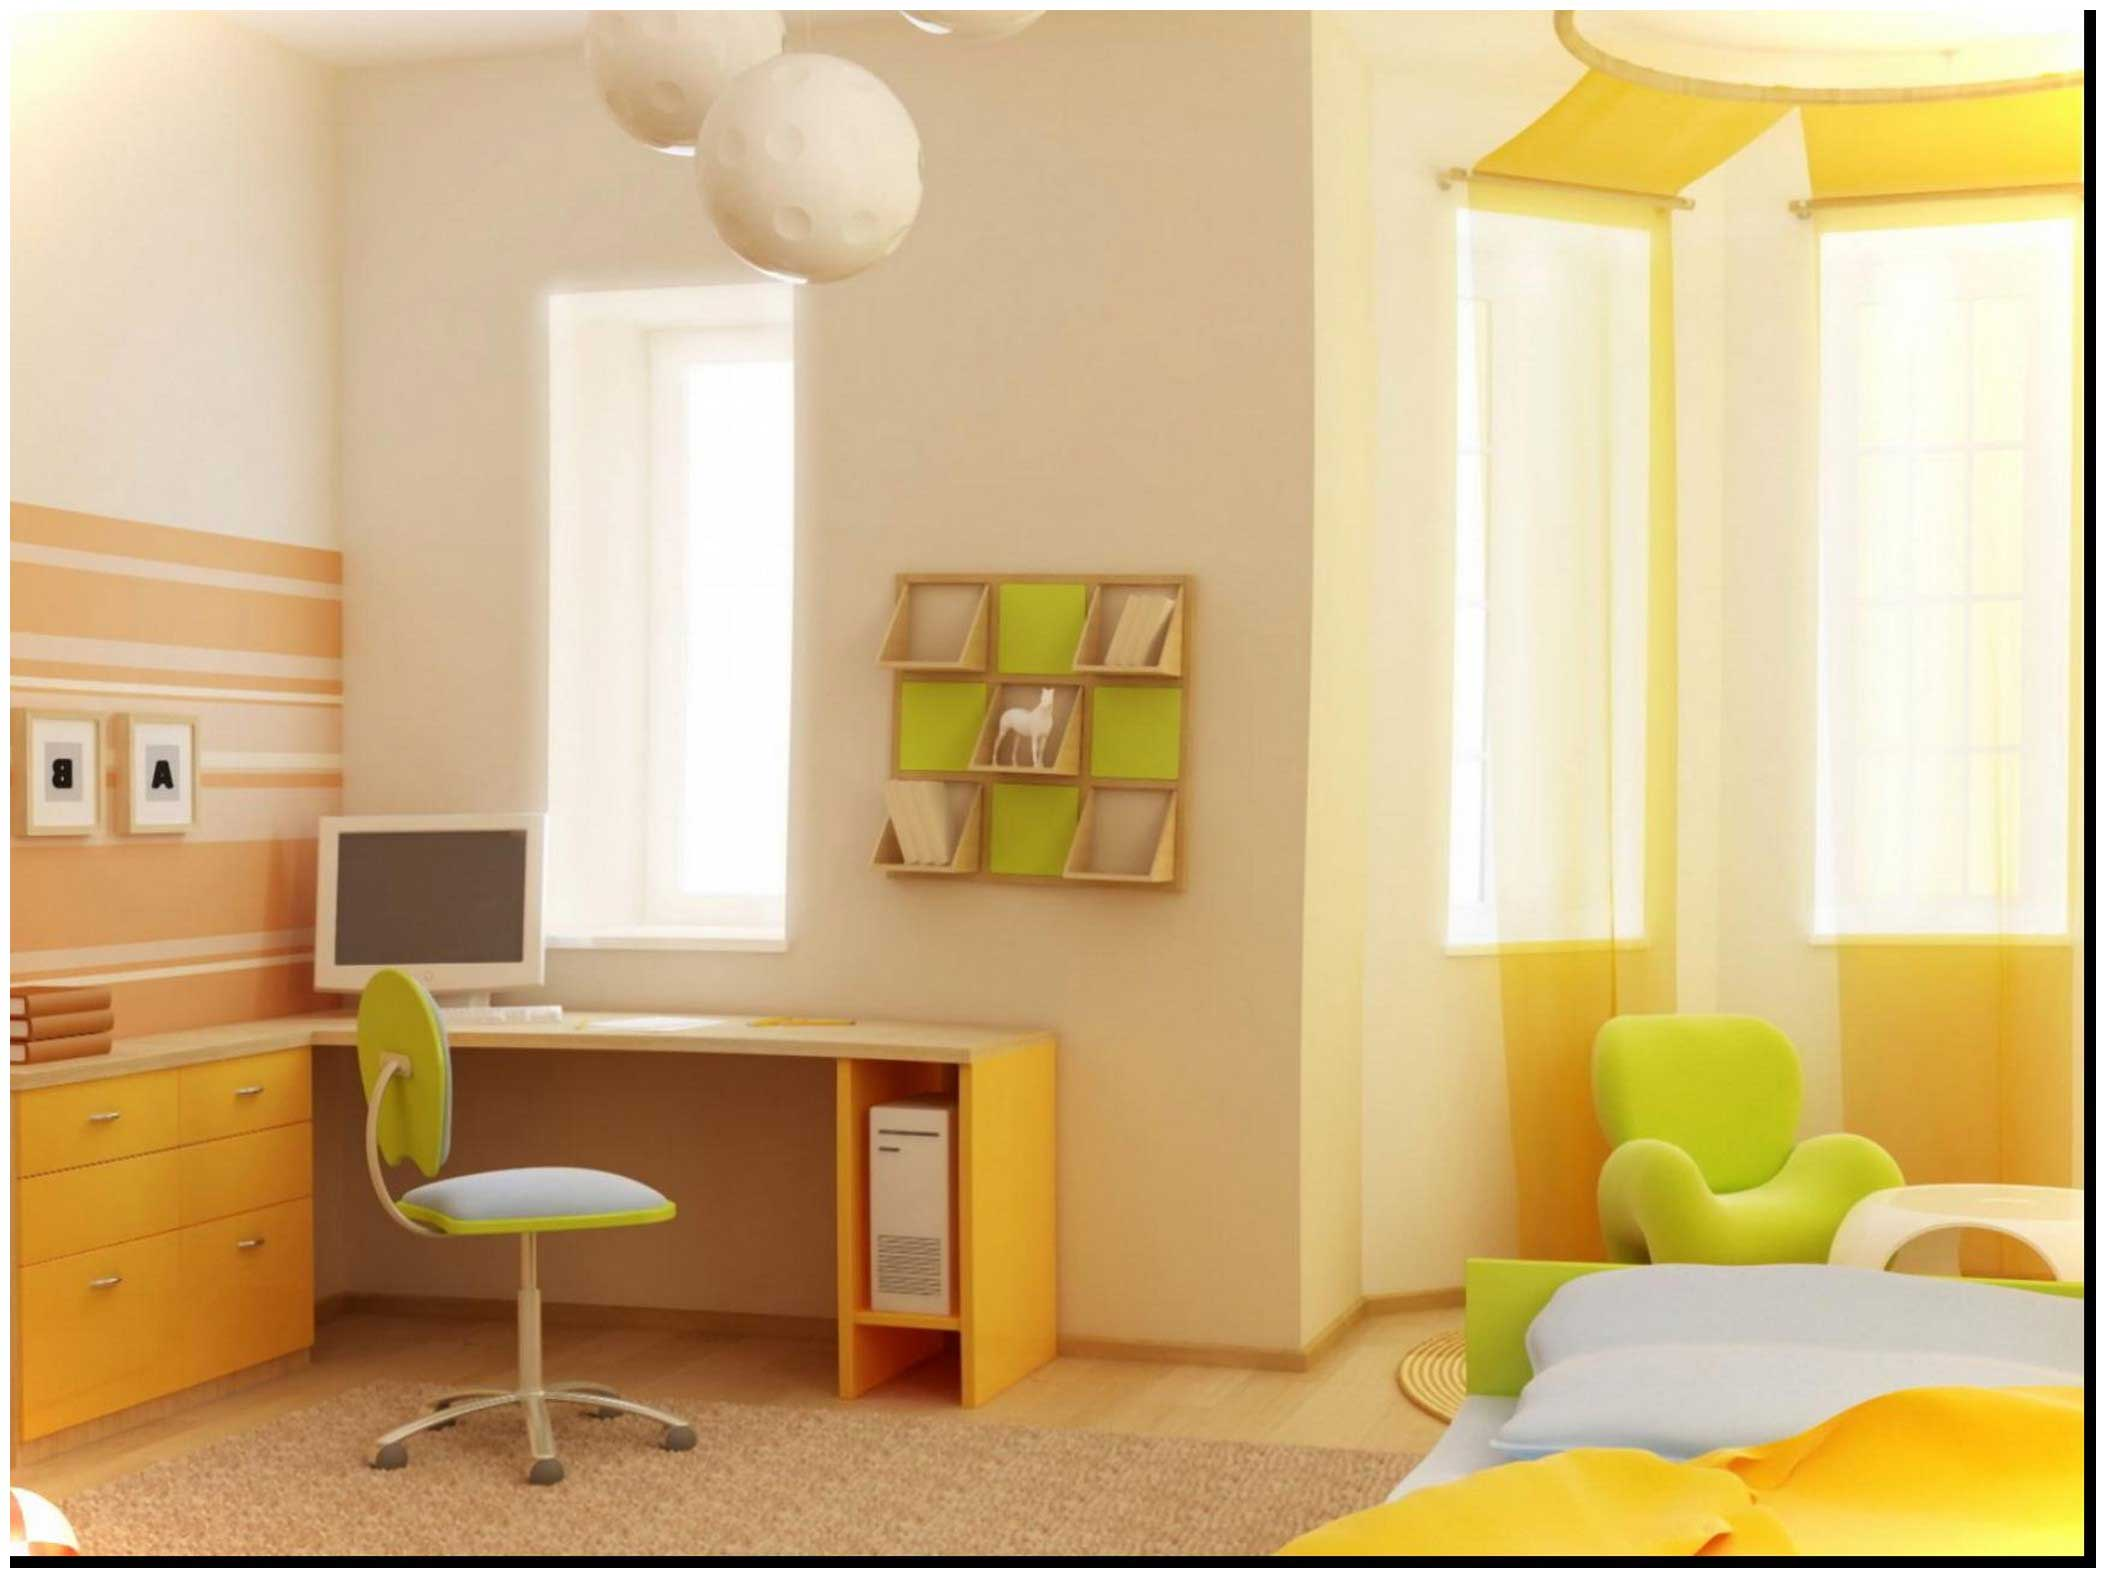 Asian Paints Colour Shades In Yellow Bring Sunshine Into Your Home Interior Exterior Ideas